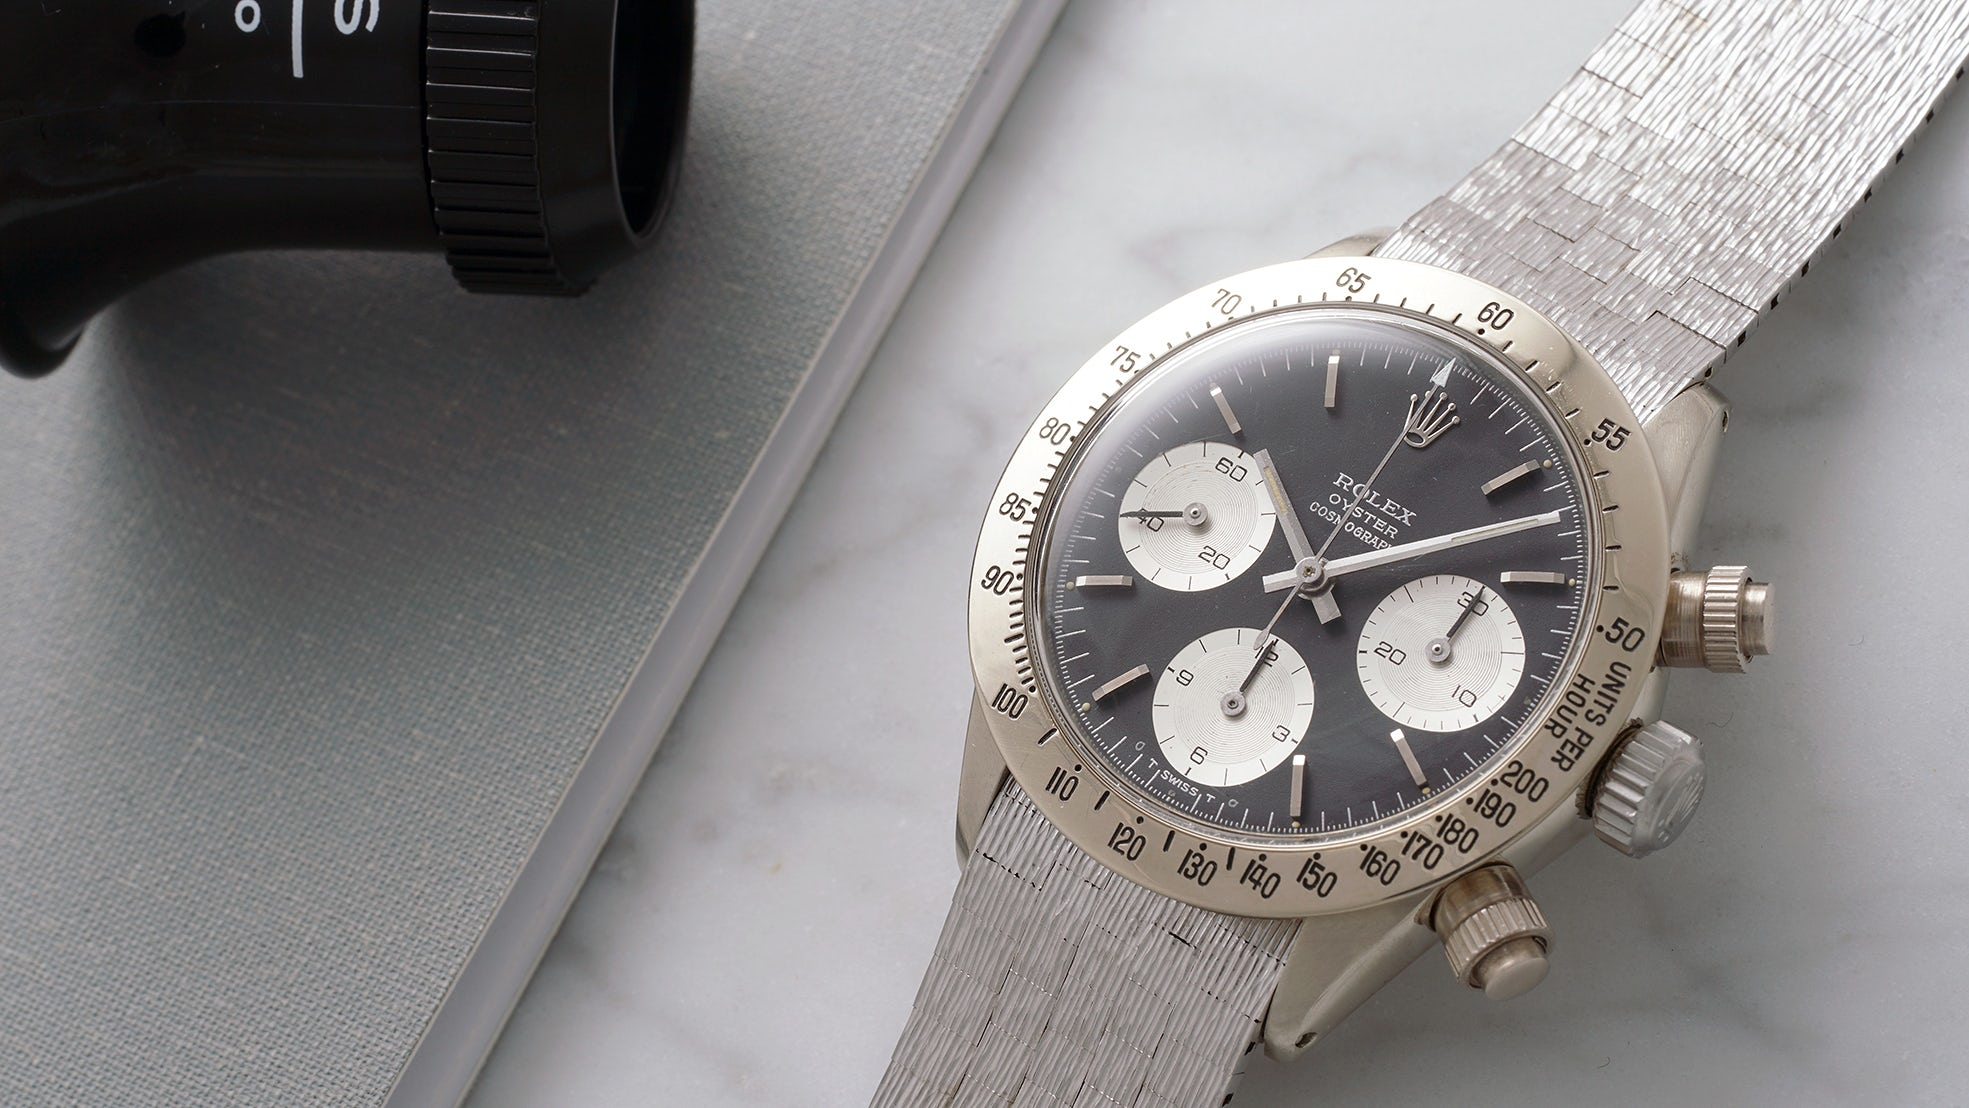 Rolex_Cosmograph_Daytona_The_Unicorn_in_18_karat_white_gold_reference_6265_2